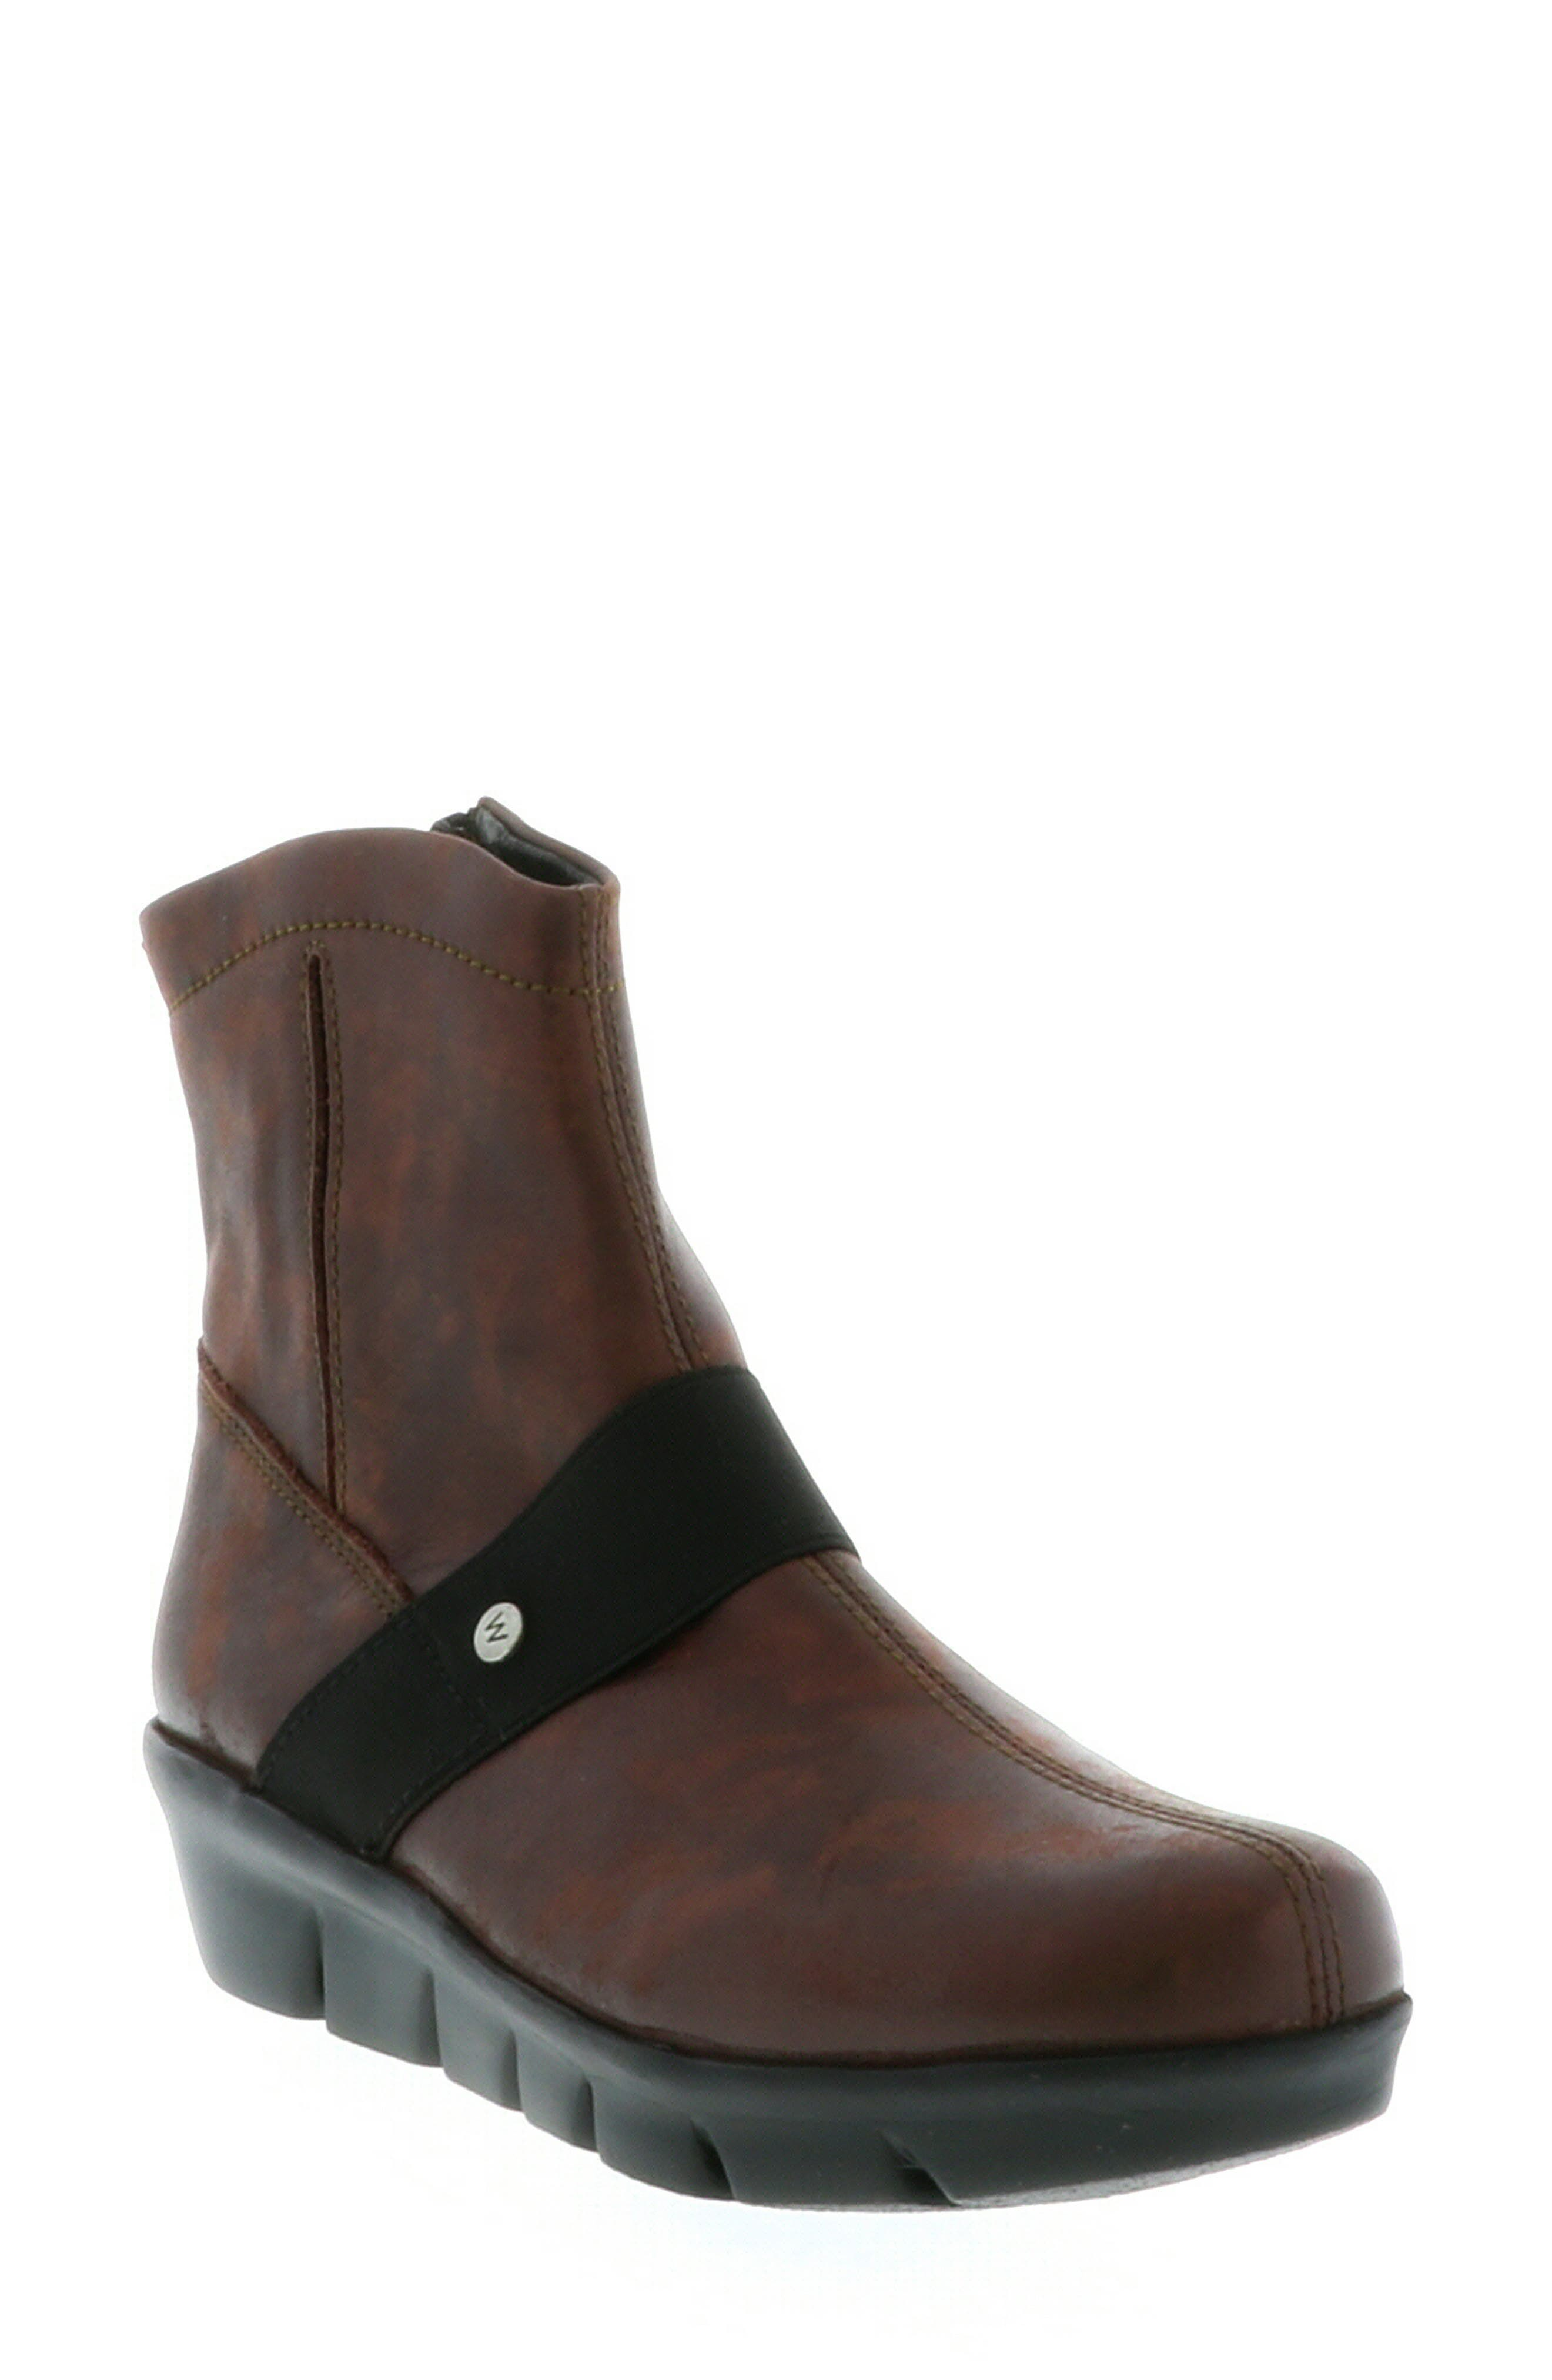 Wolky Omni Wedge Bootie